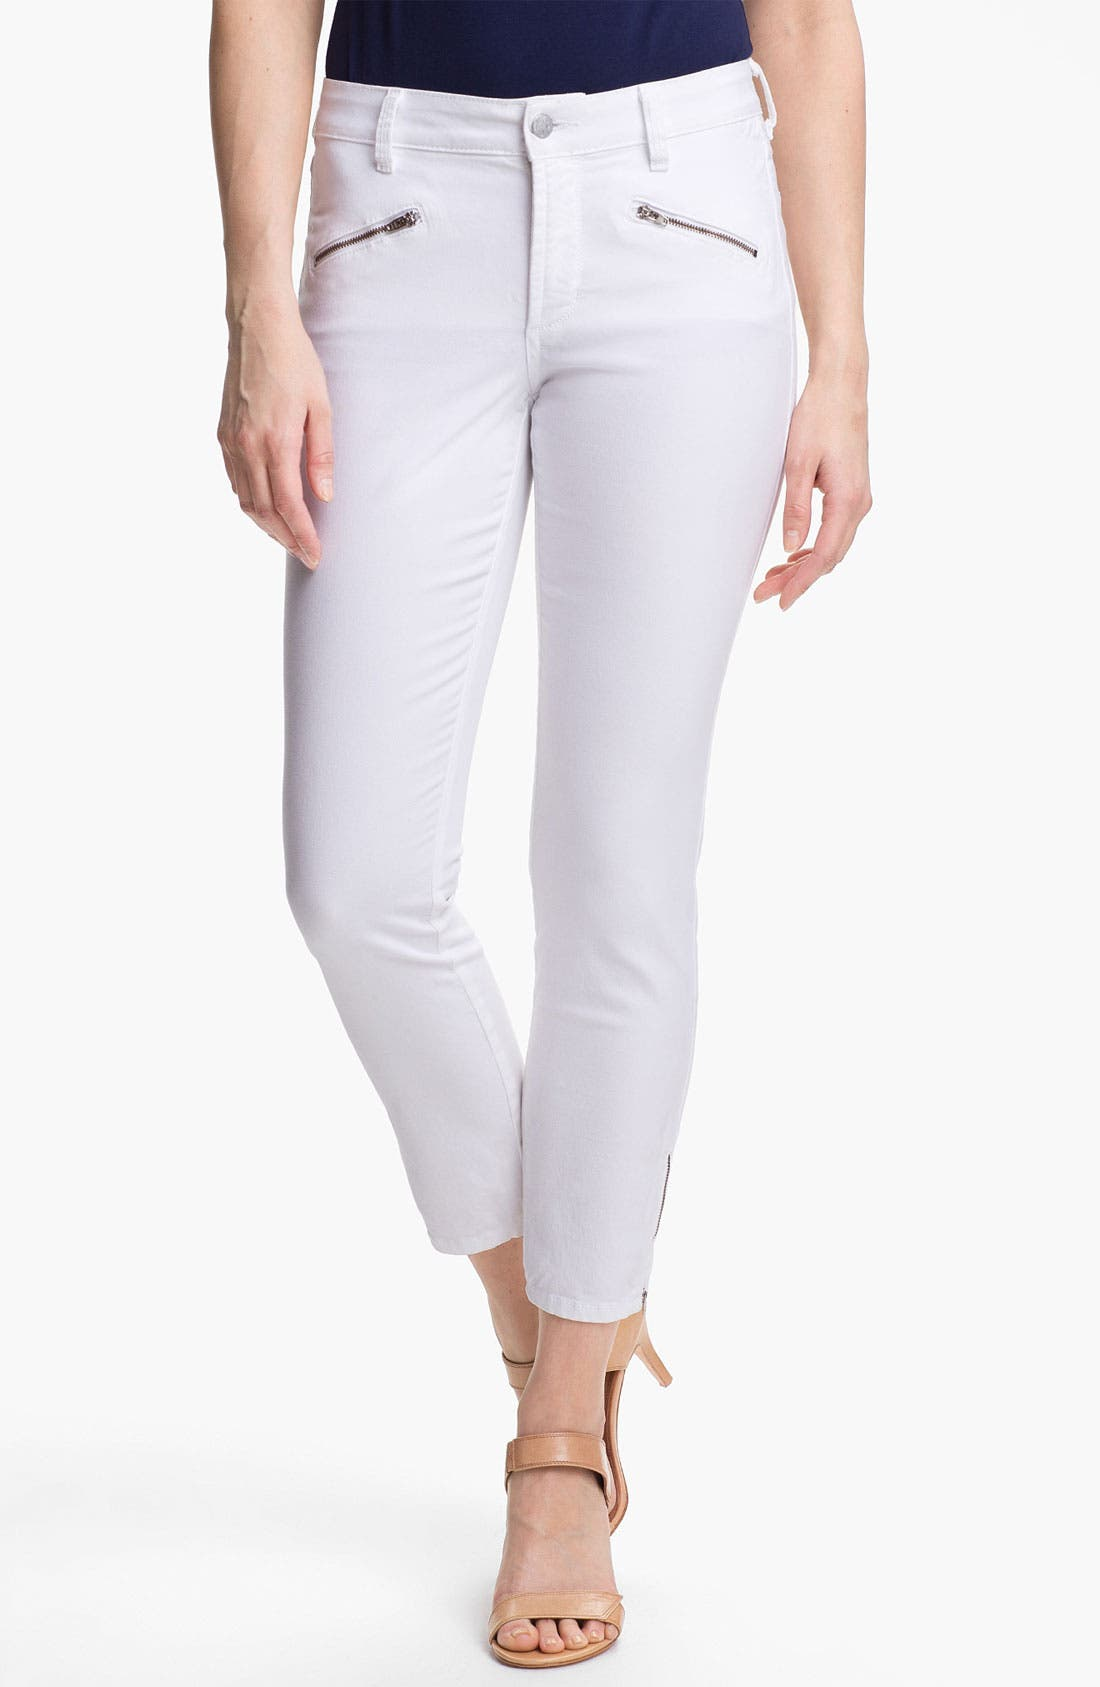 Alternate Image 1 Selected - NYDJ 'Angelina' Stretch Denim Leggings (Regular & Petite)